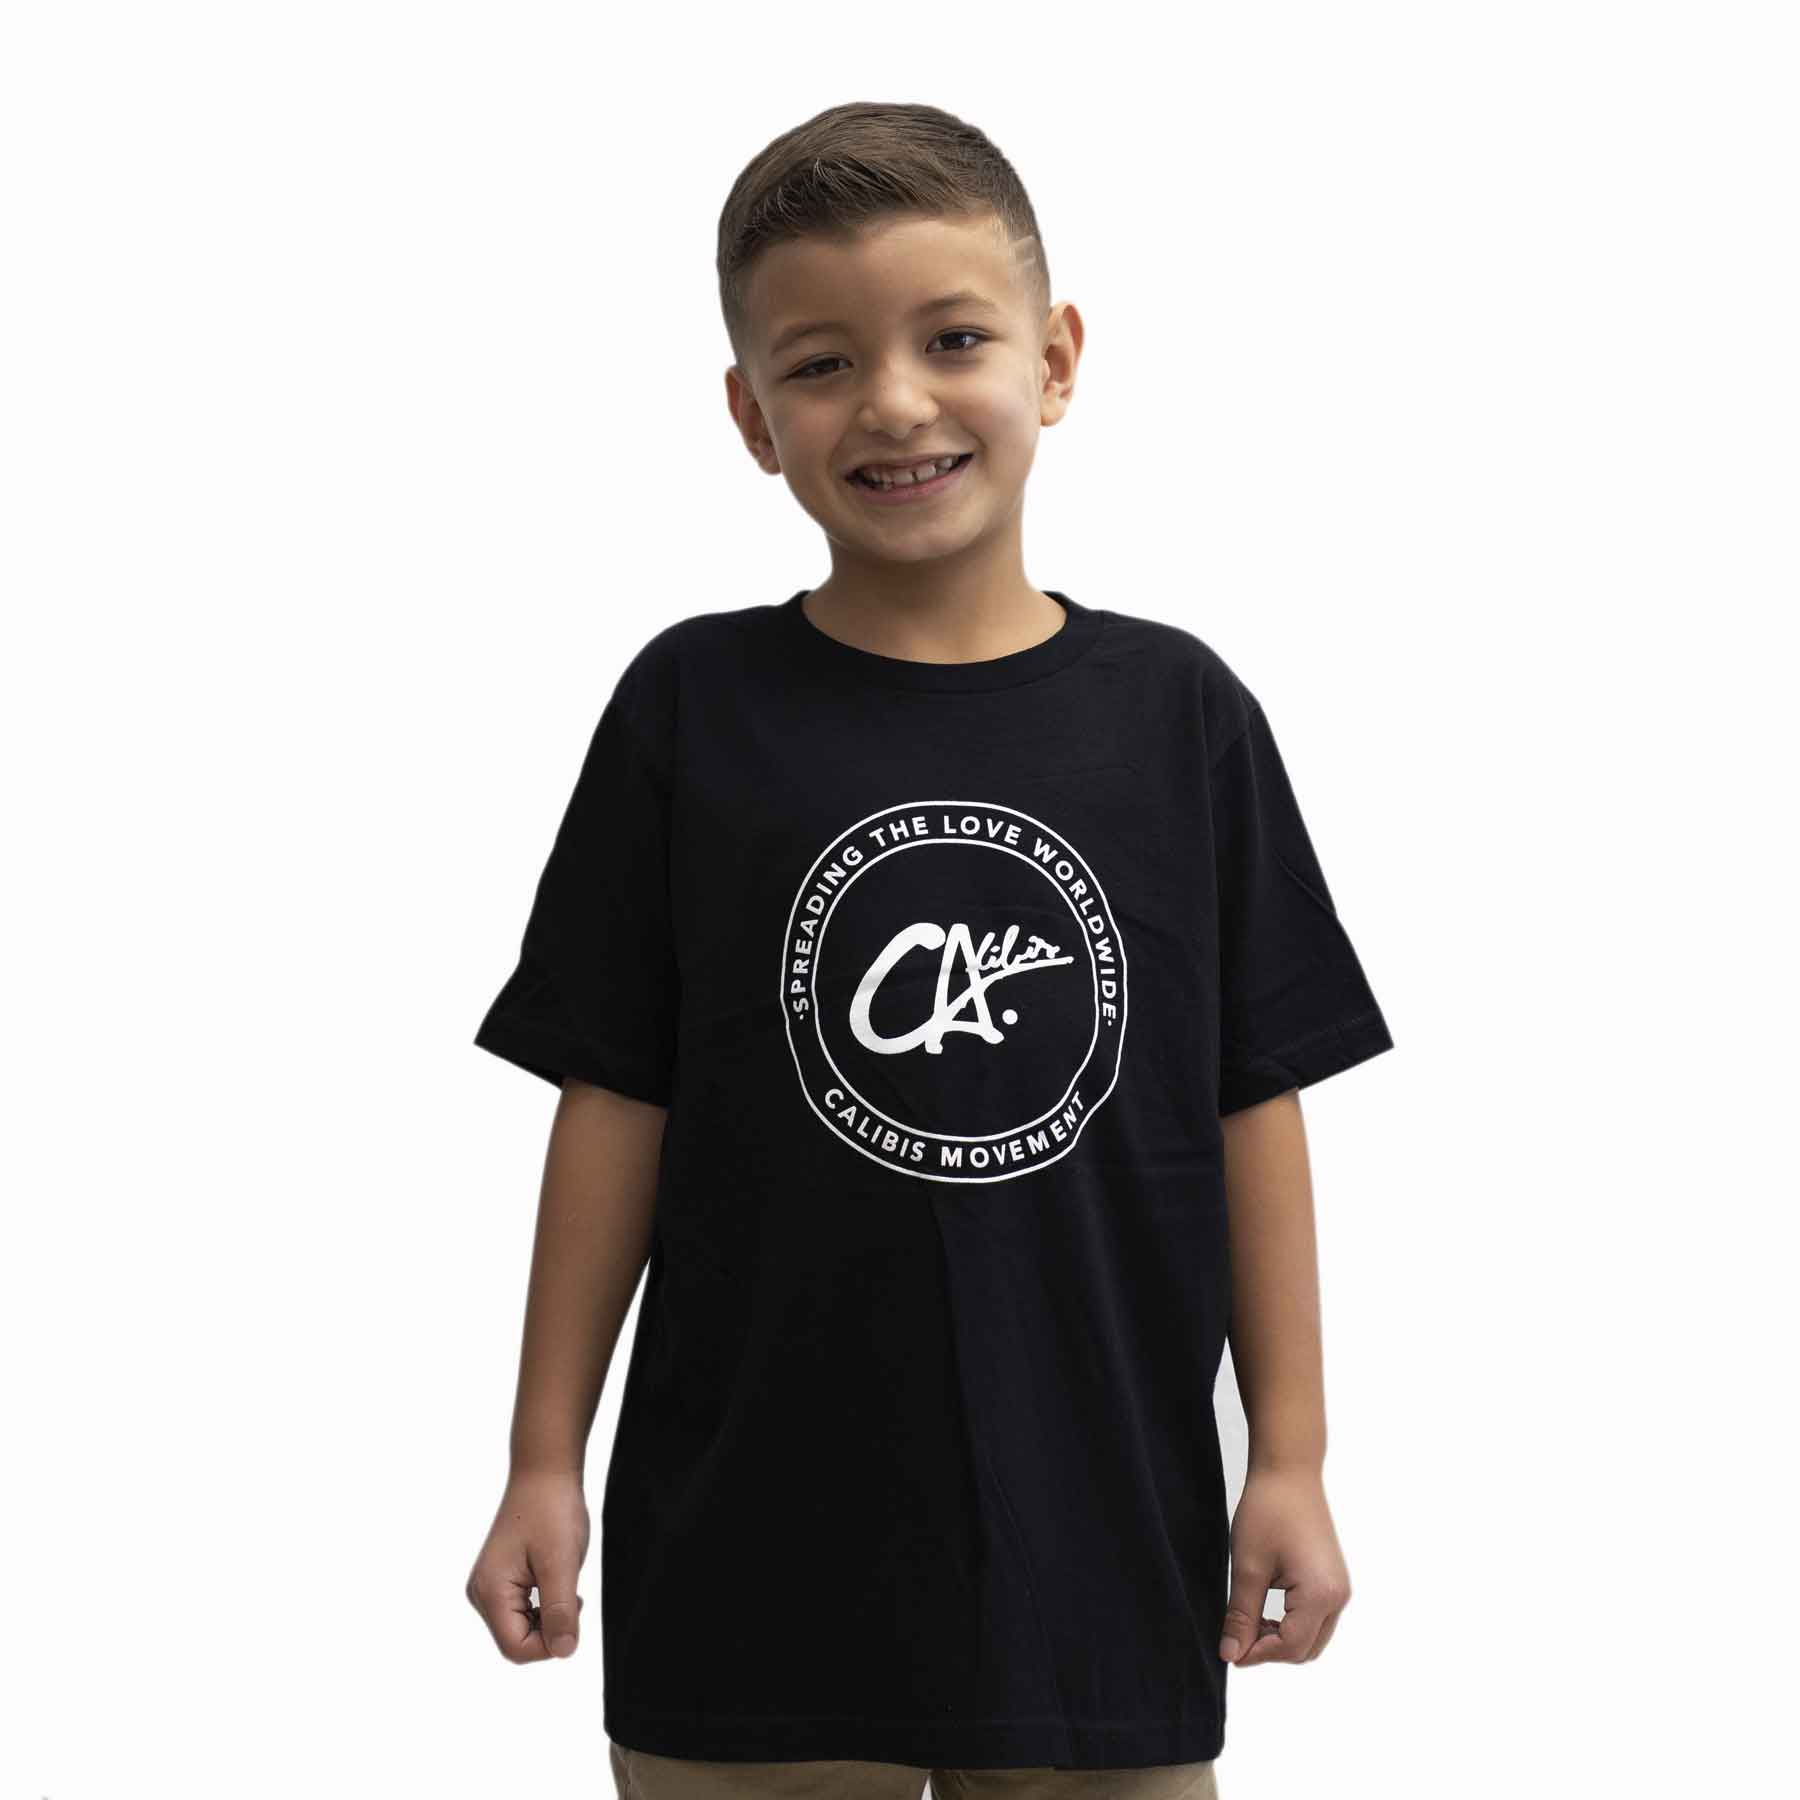 Kids Worldwide Tee by Calibis Clothing